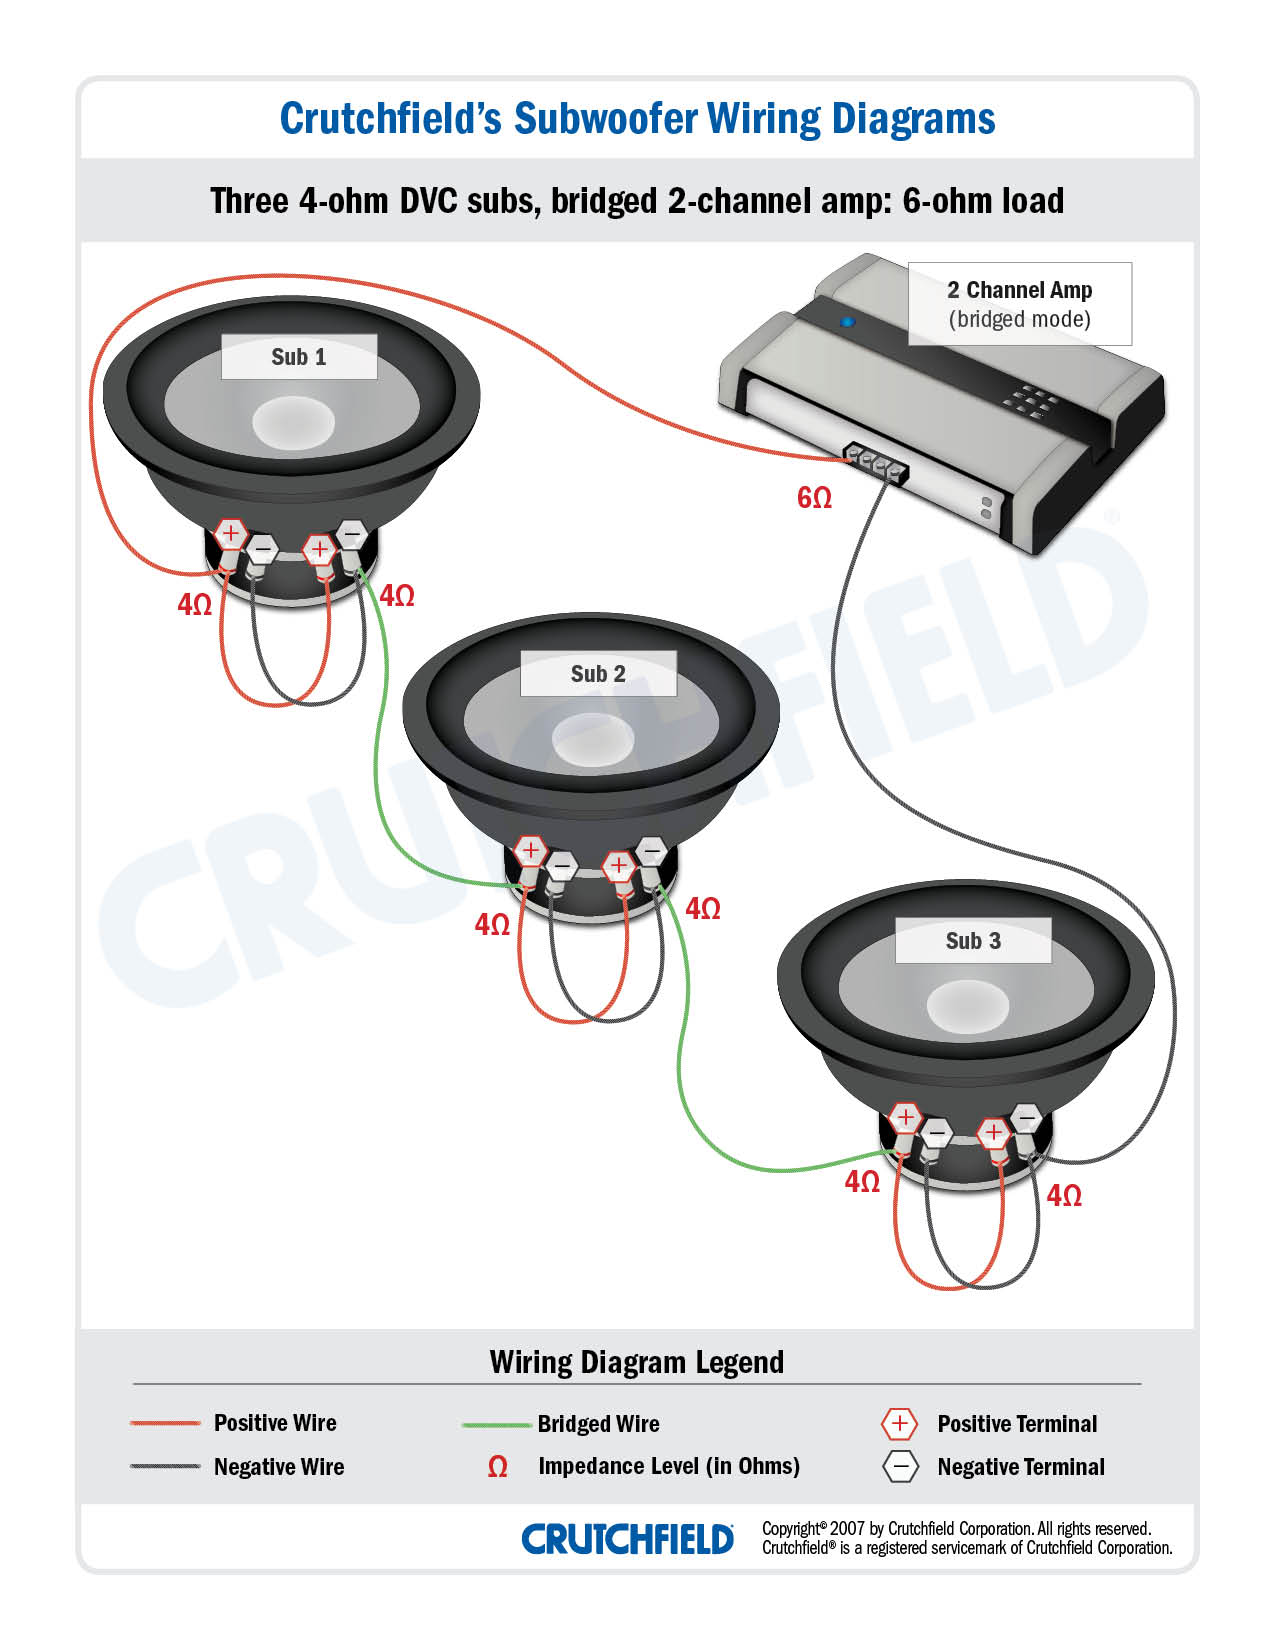 3 DVC 4 ohm 2 ch subwoofer wiring diagrams crutchfield wiring diagrams at crackthecode.co